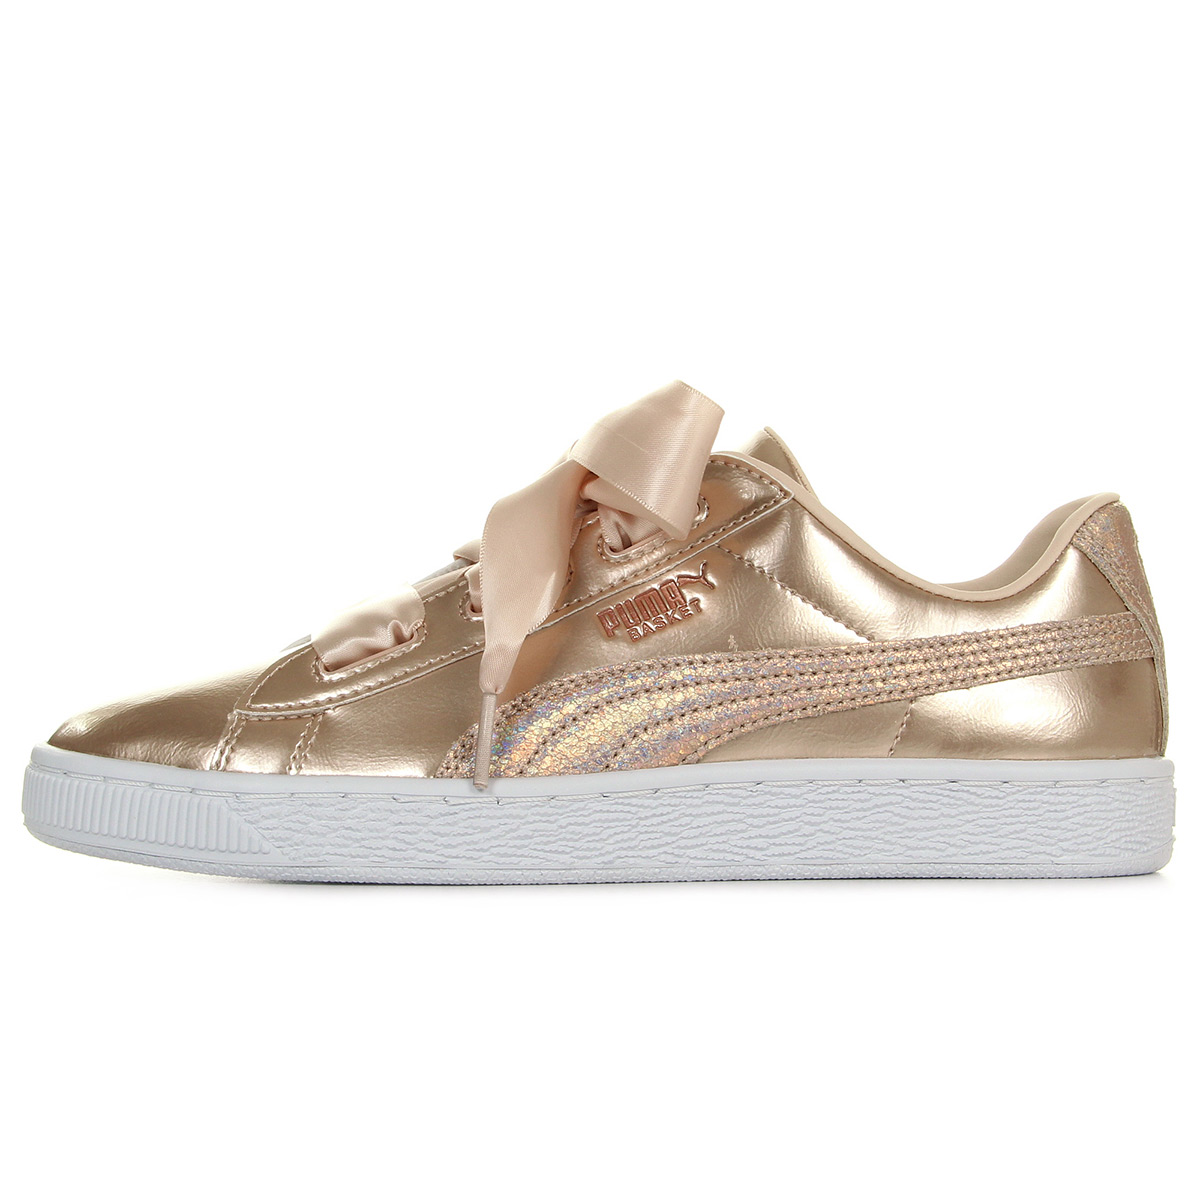 Puma Basket Heart Lunar Lux Jr 36599302, Baskets mode femme